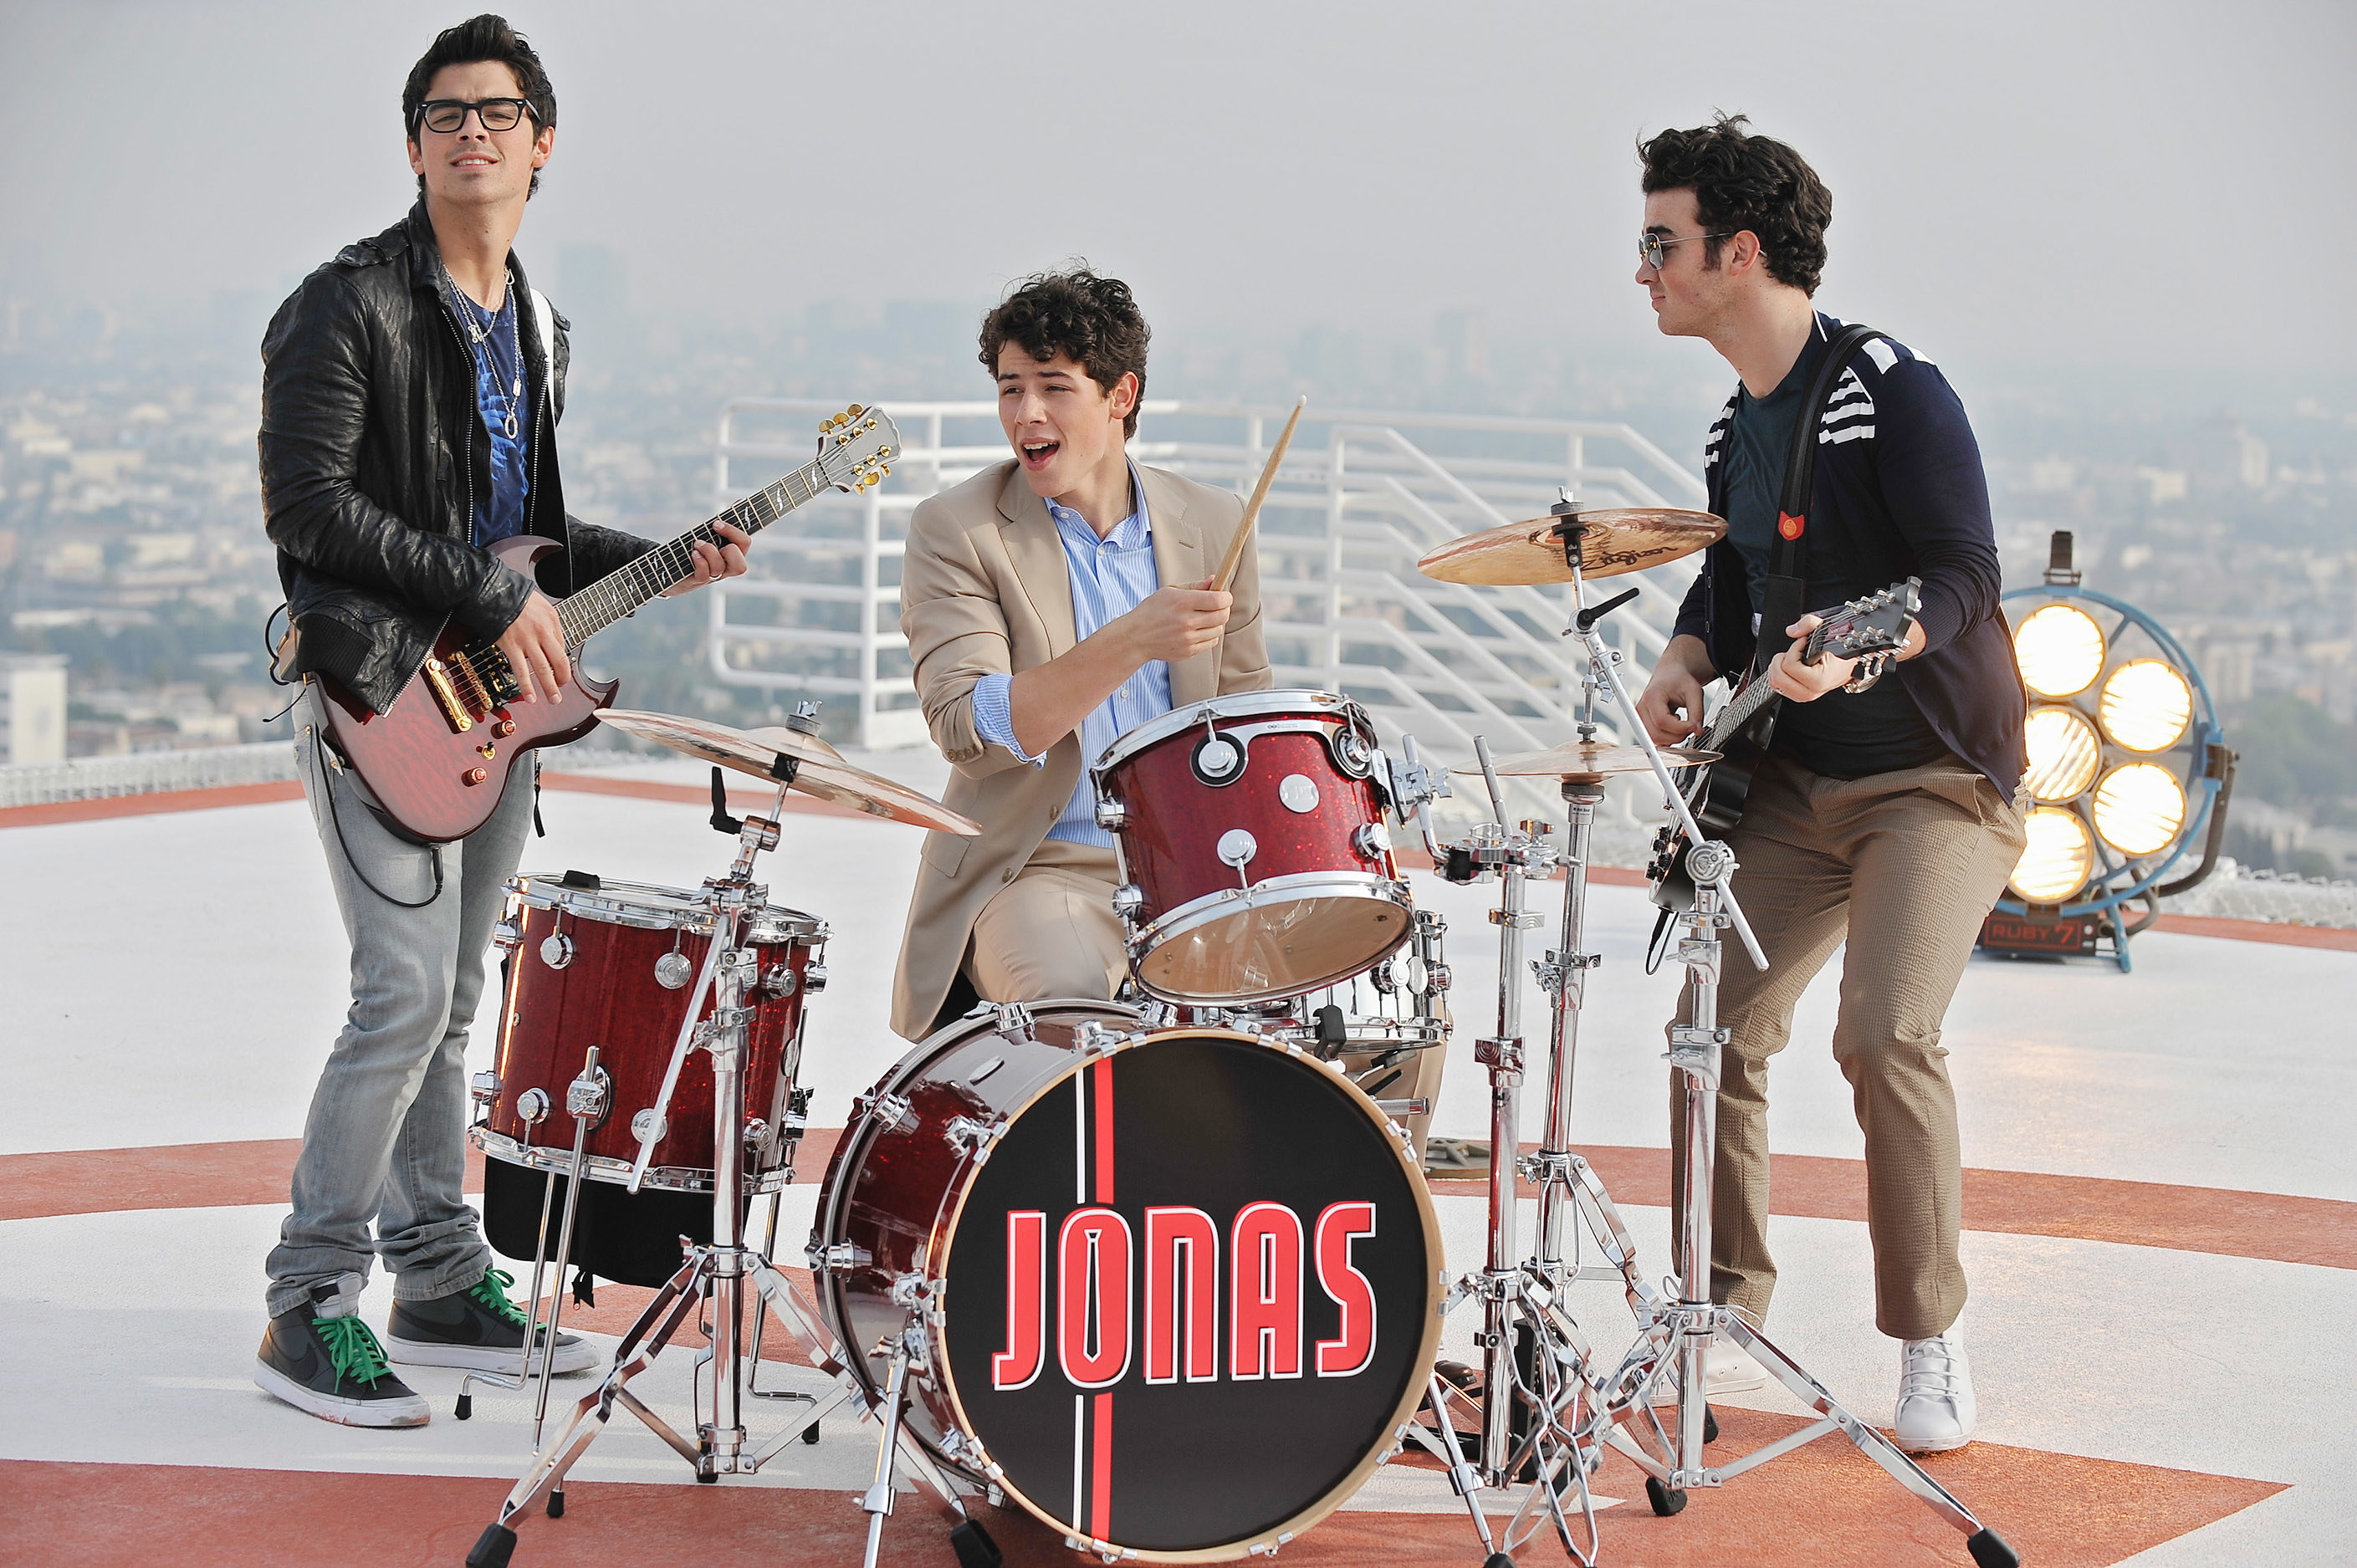 A promotional photo of the Jonas Brothers taken for Jonas